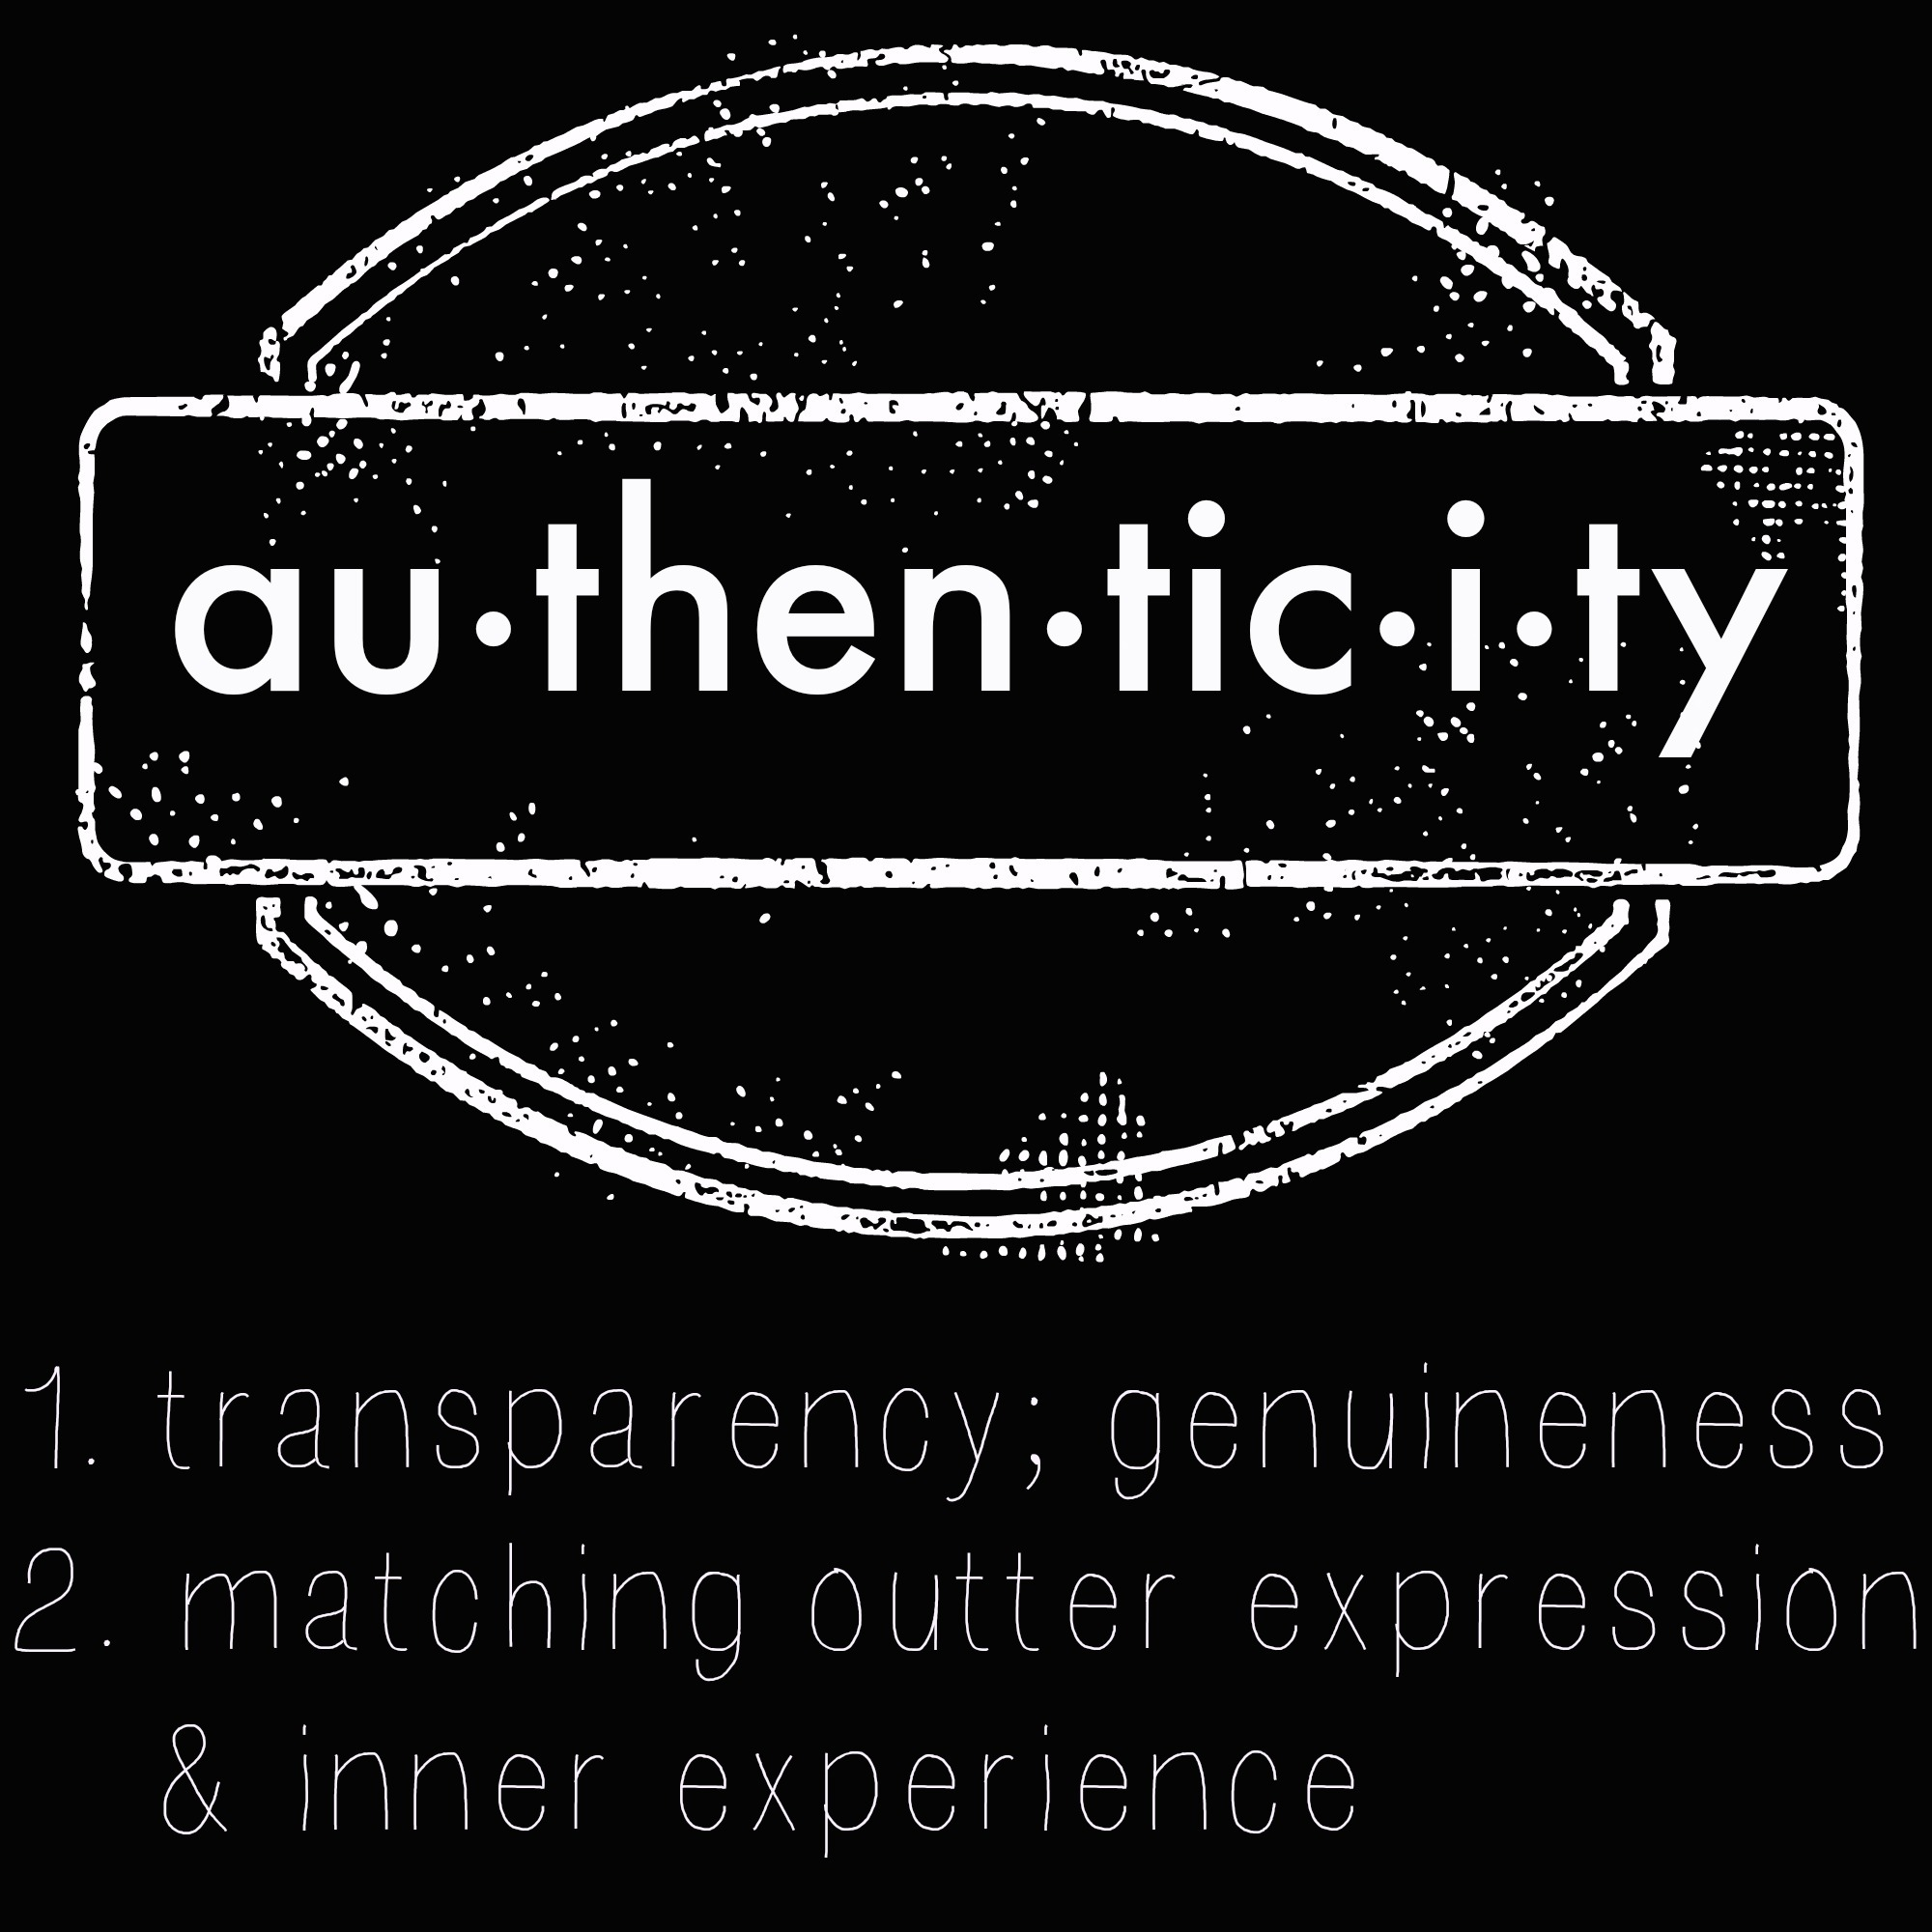 Authenticity: One Woman's {{Transparent}} Thoughts on What it Means ...